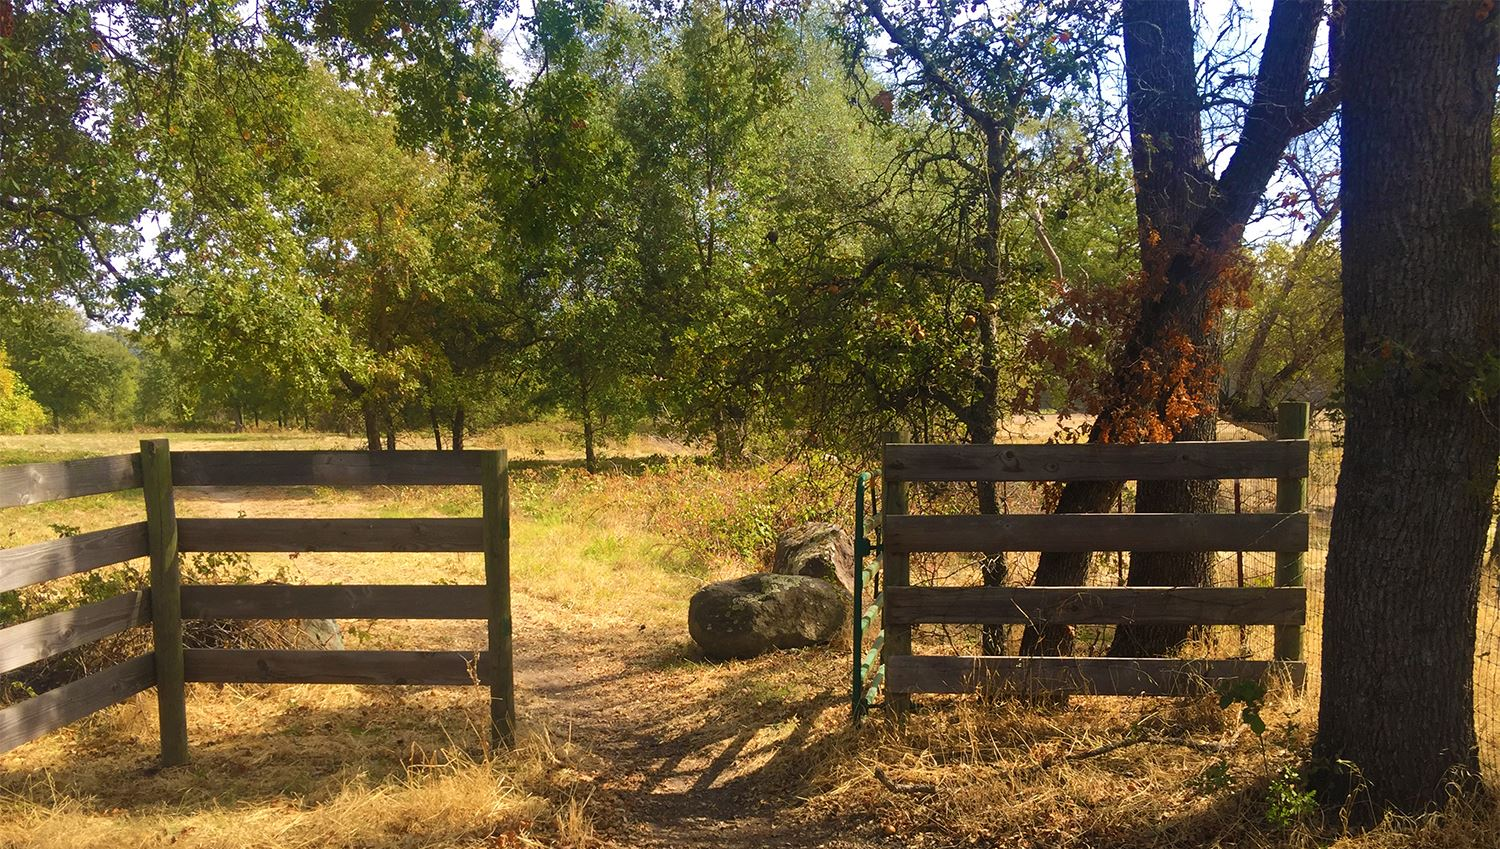 Photograph of a gated entrance at Traylor Ranch